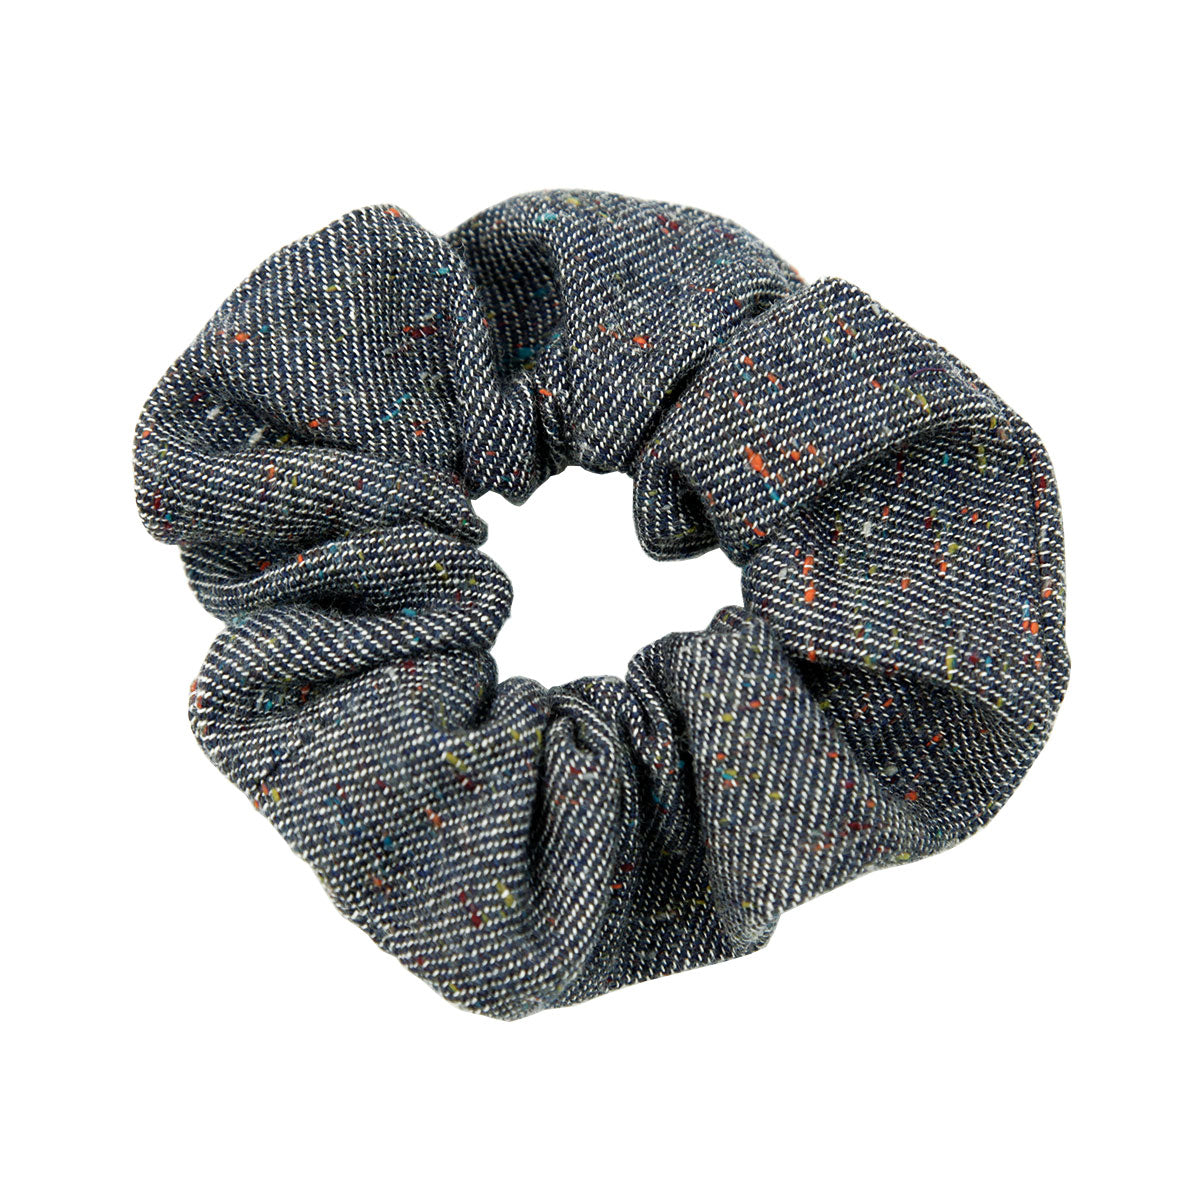 The Crisp Scrunchy